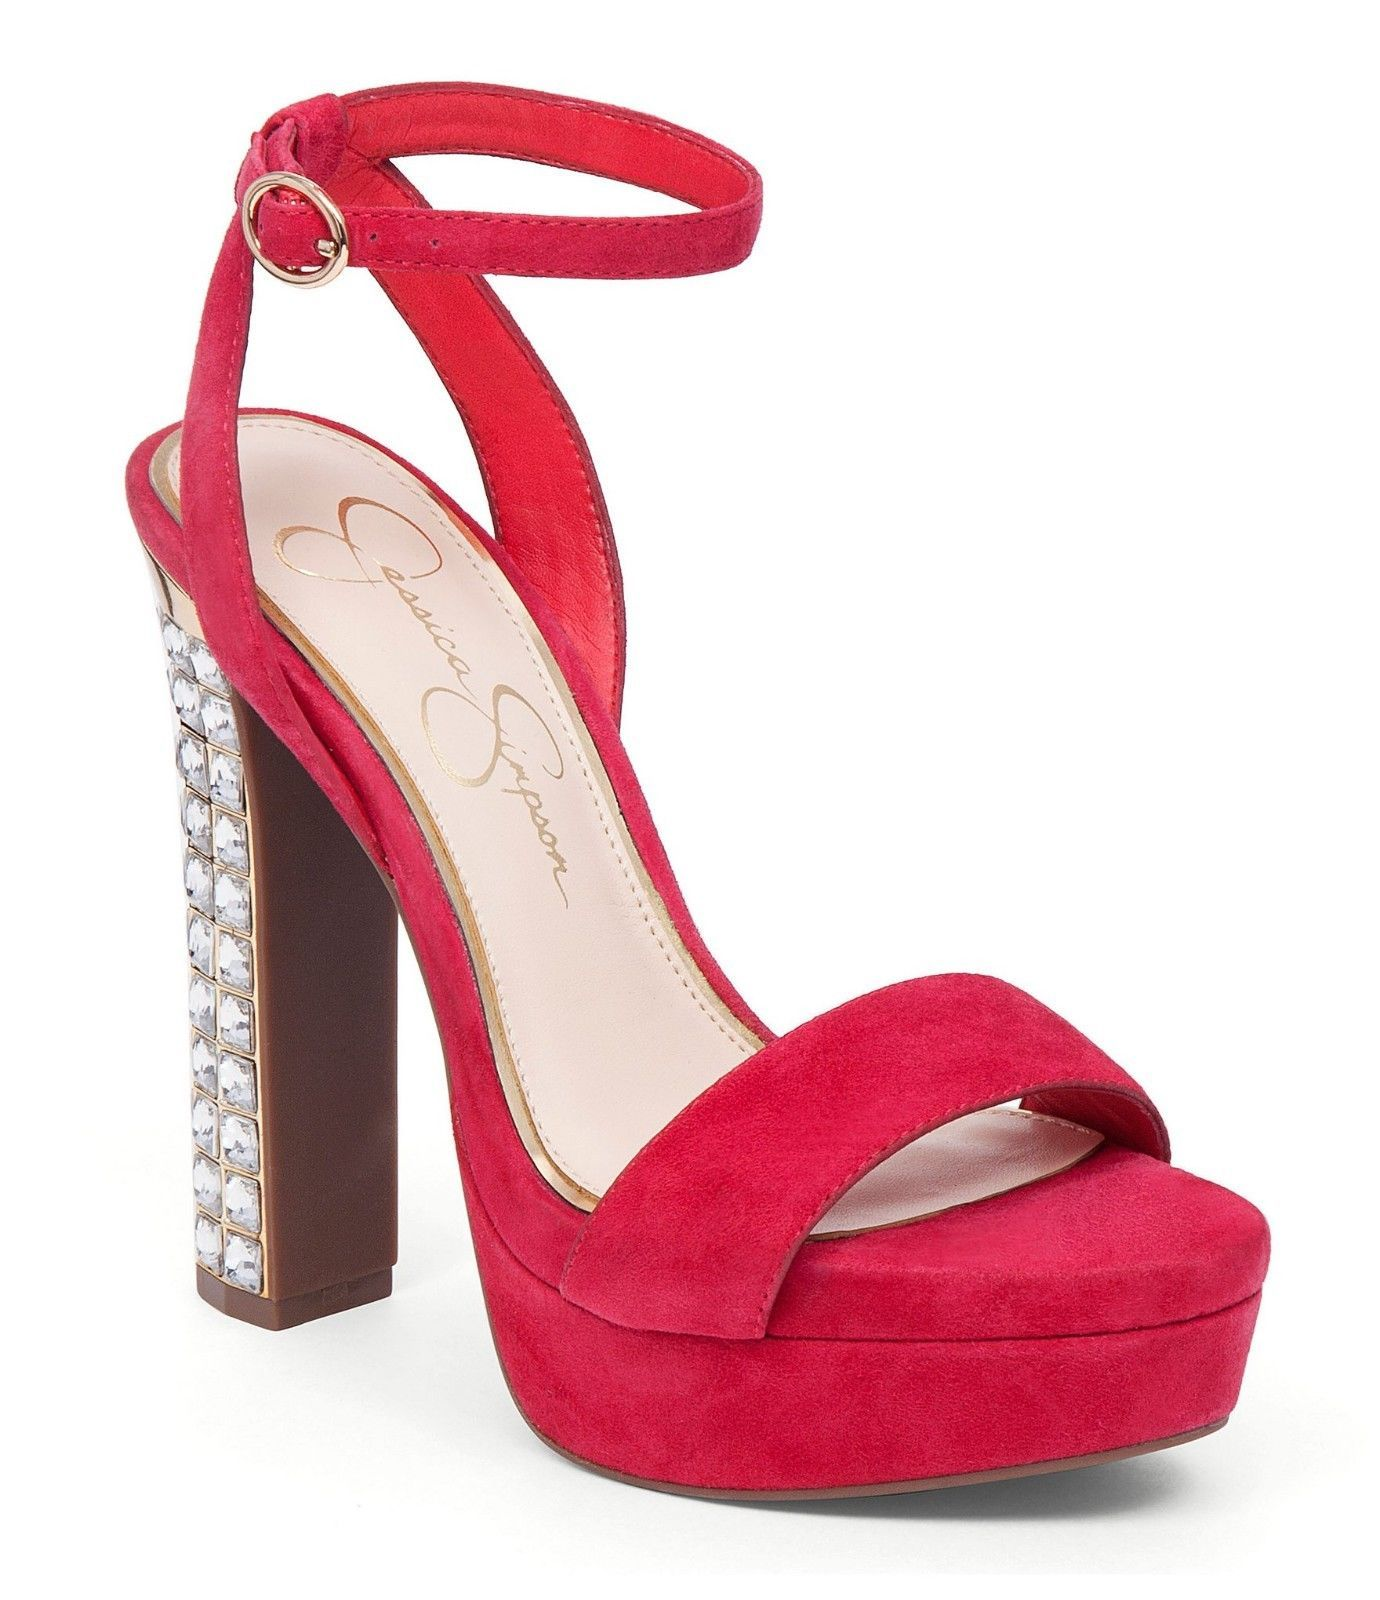 Primary image for Women's Jessica Simpson Banda Sandals, Sizes 6-9 Pacifico Coral Suede JS-BANDA